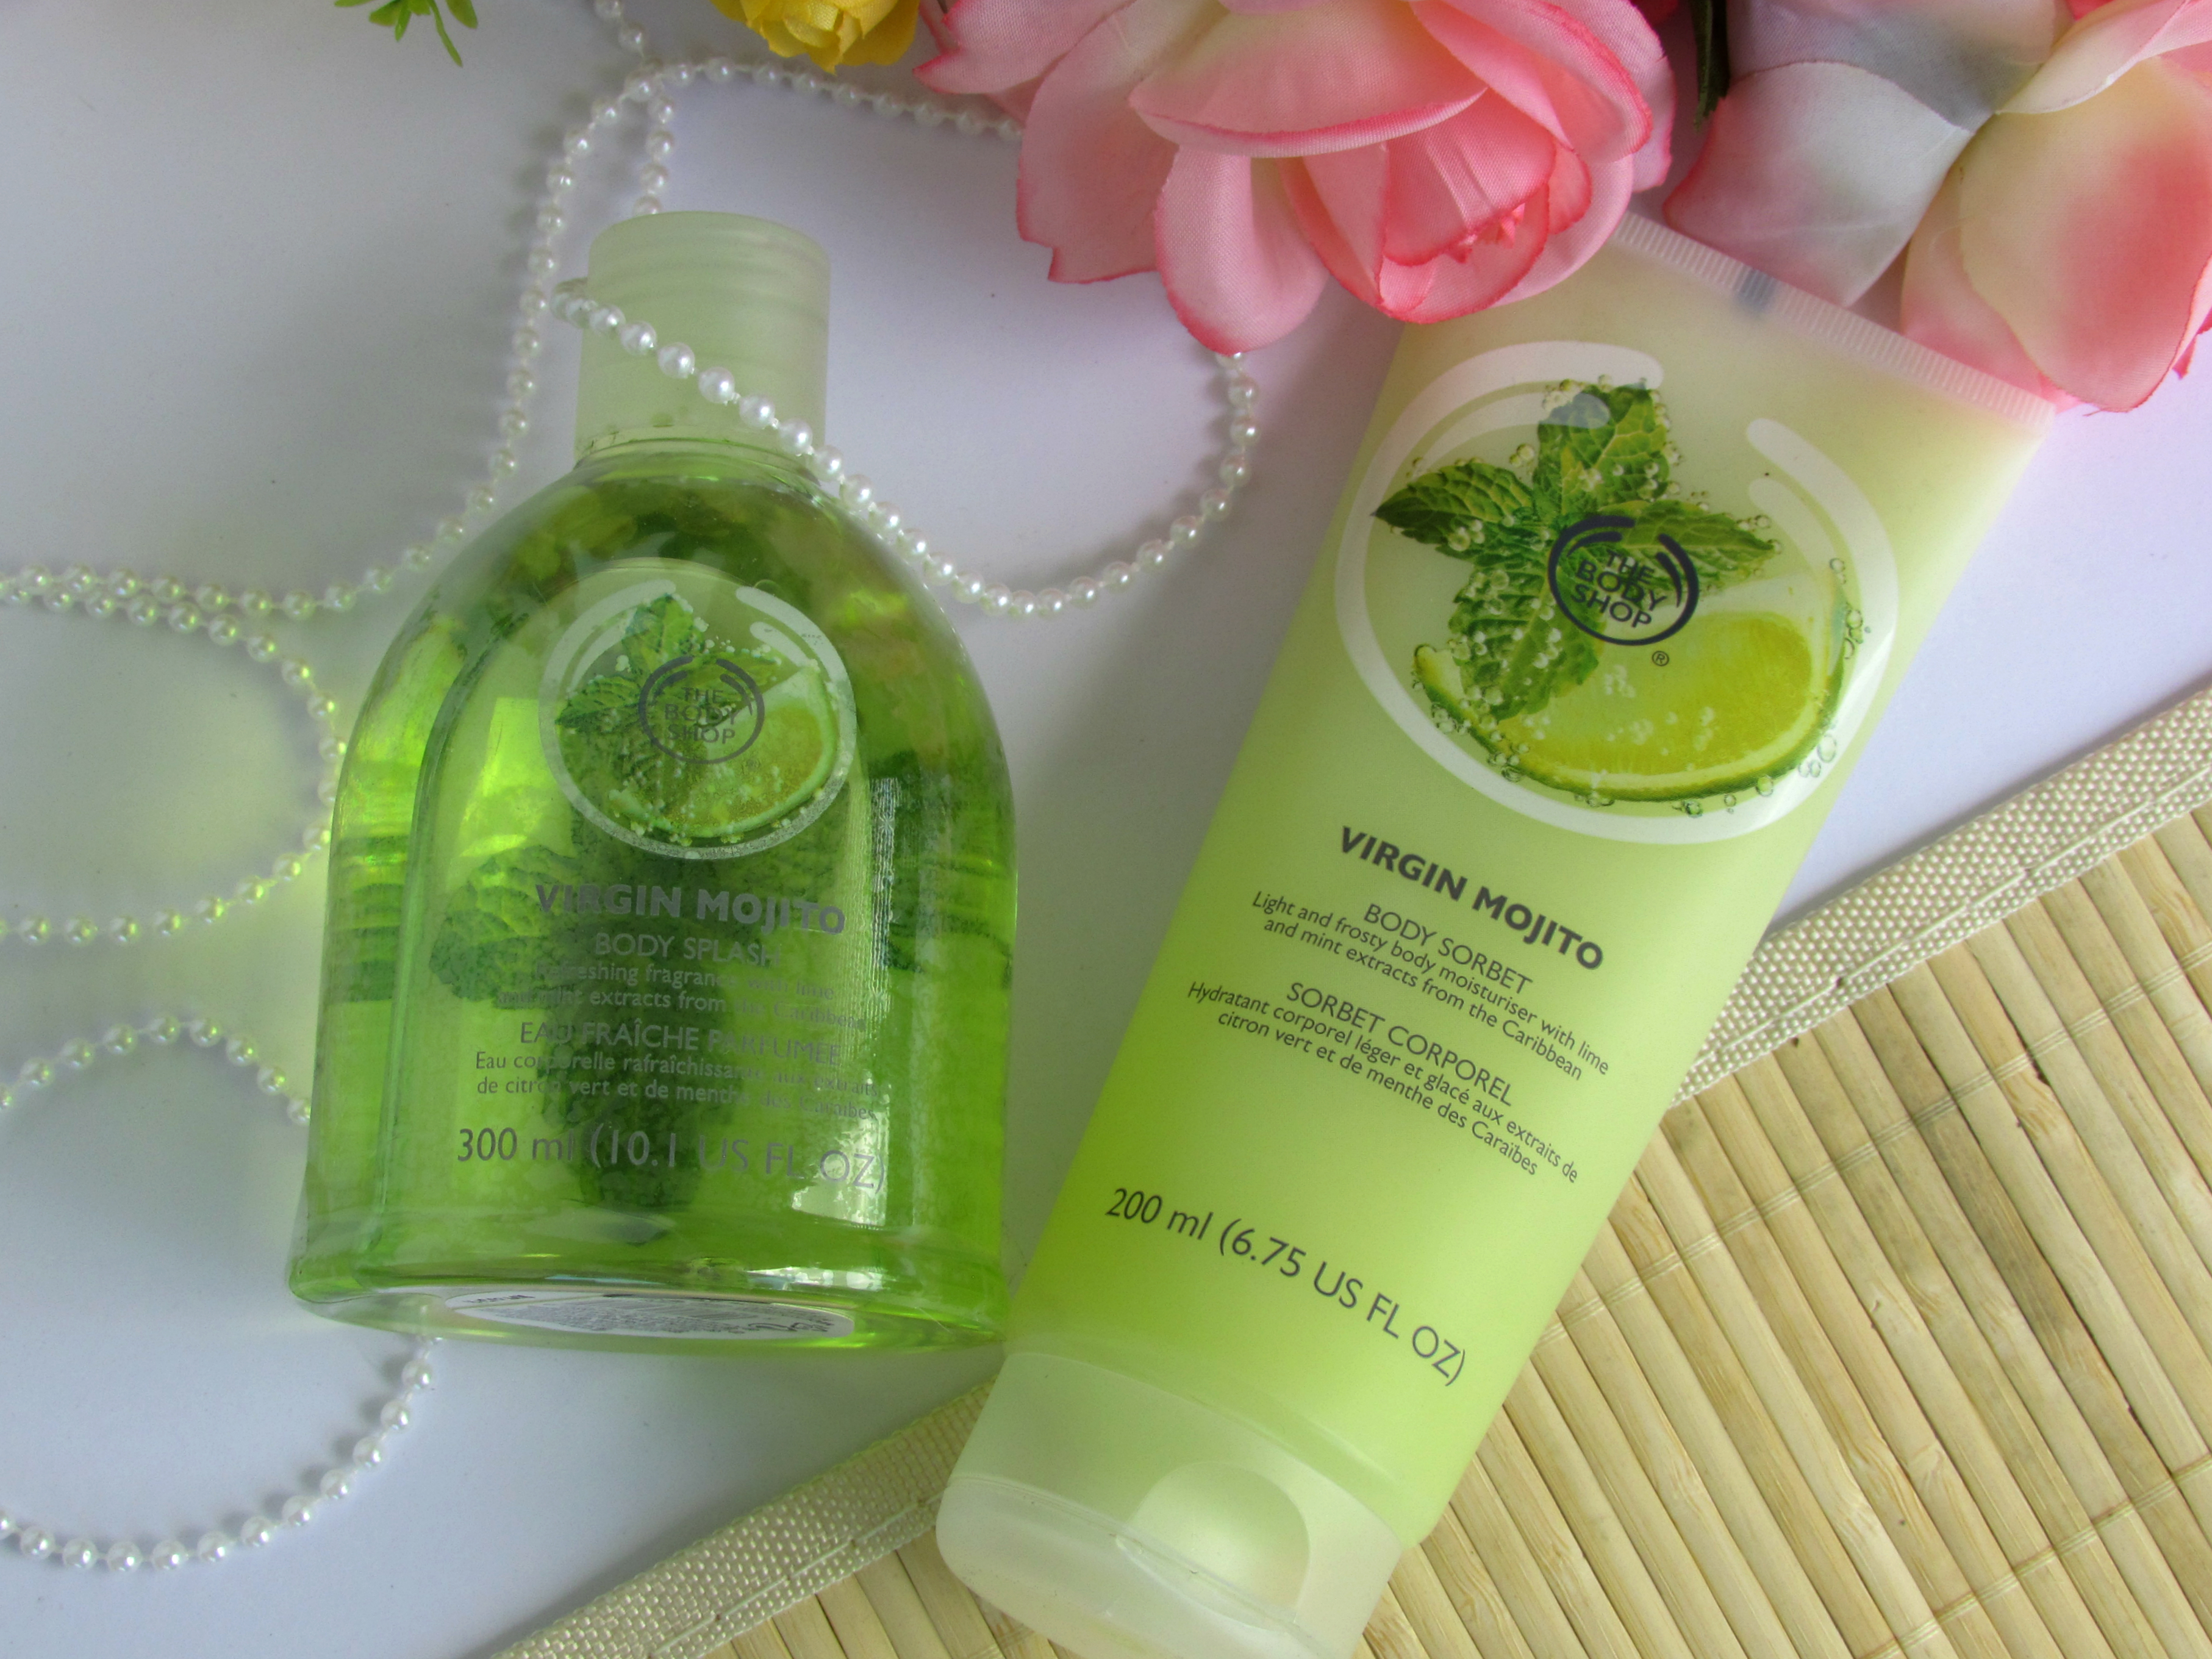 THE BODY SHOP VIRGIN MOJITO BODY SORBET &  BODY SPLASH